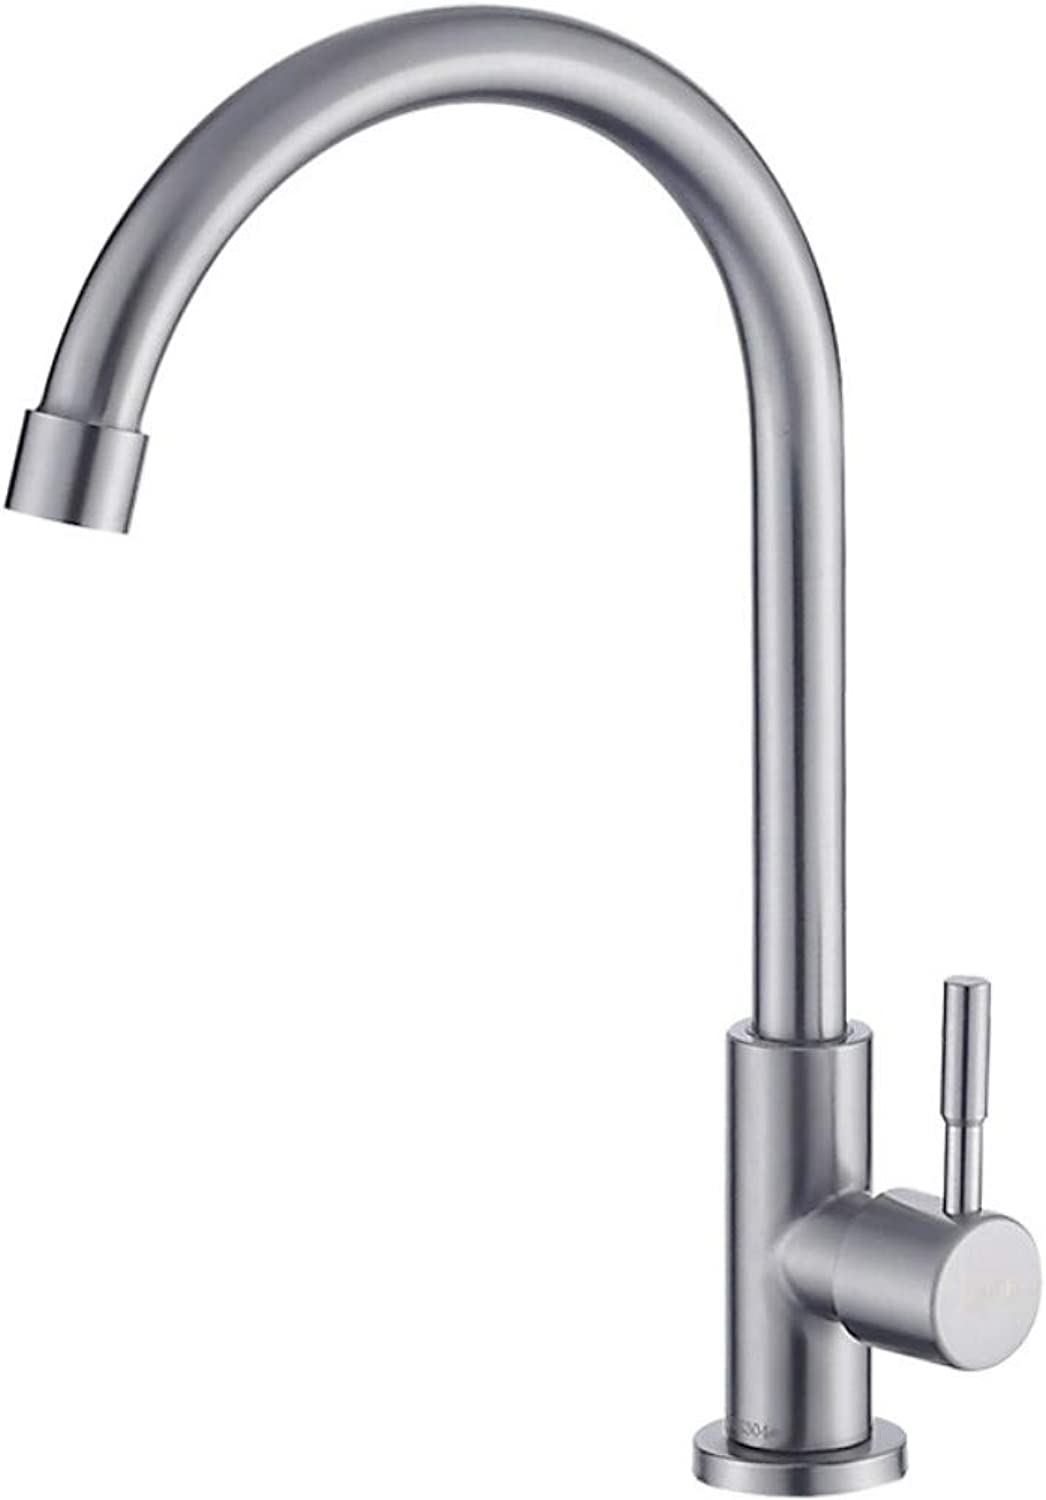 IBathUS Kitchen single cold faucet 304 stainless steel sink sink faucet